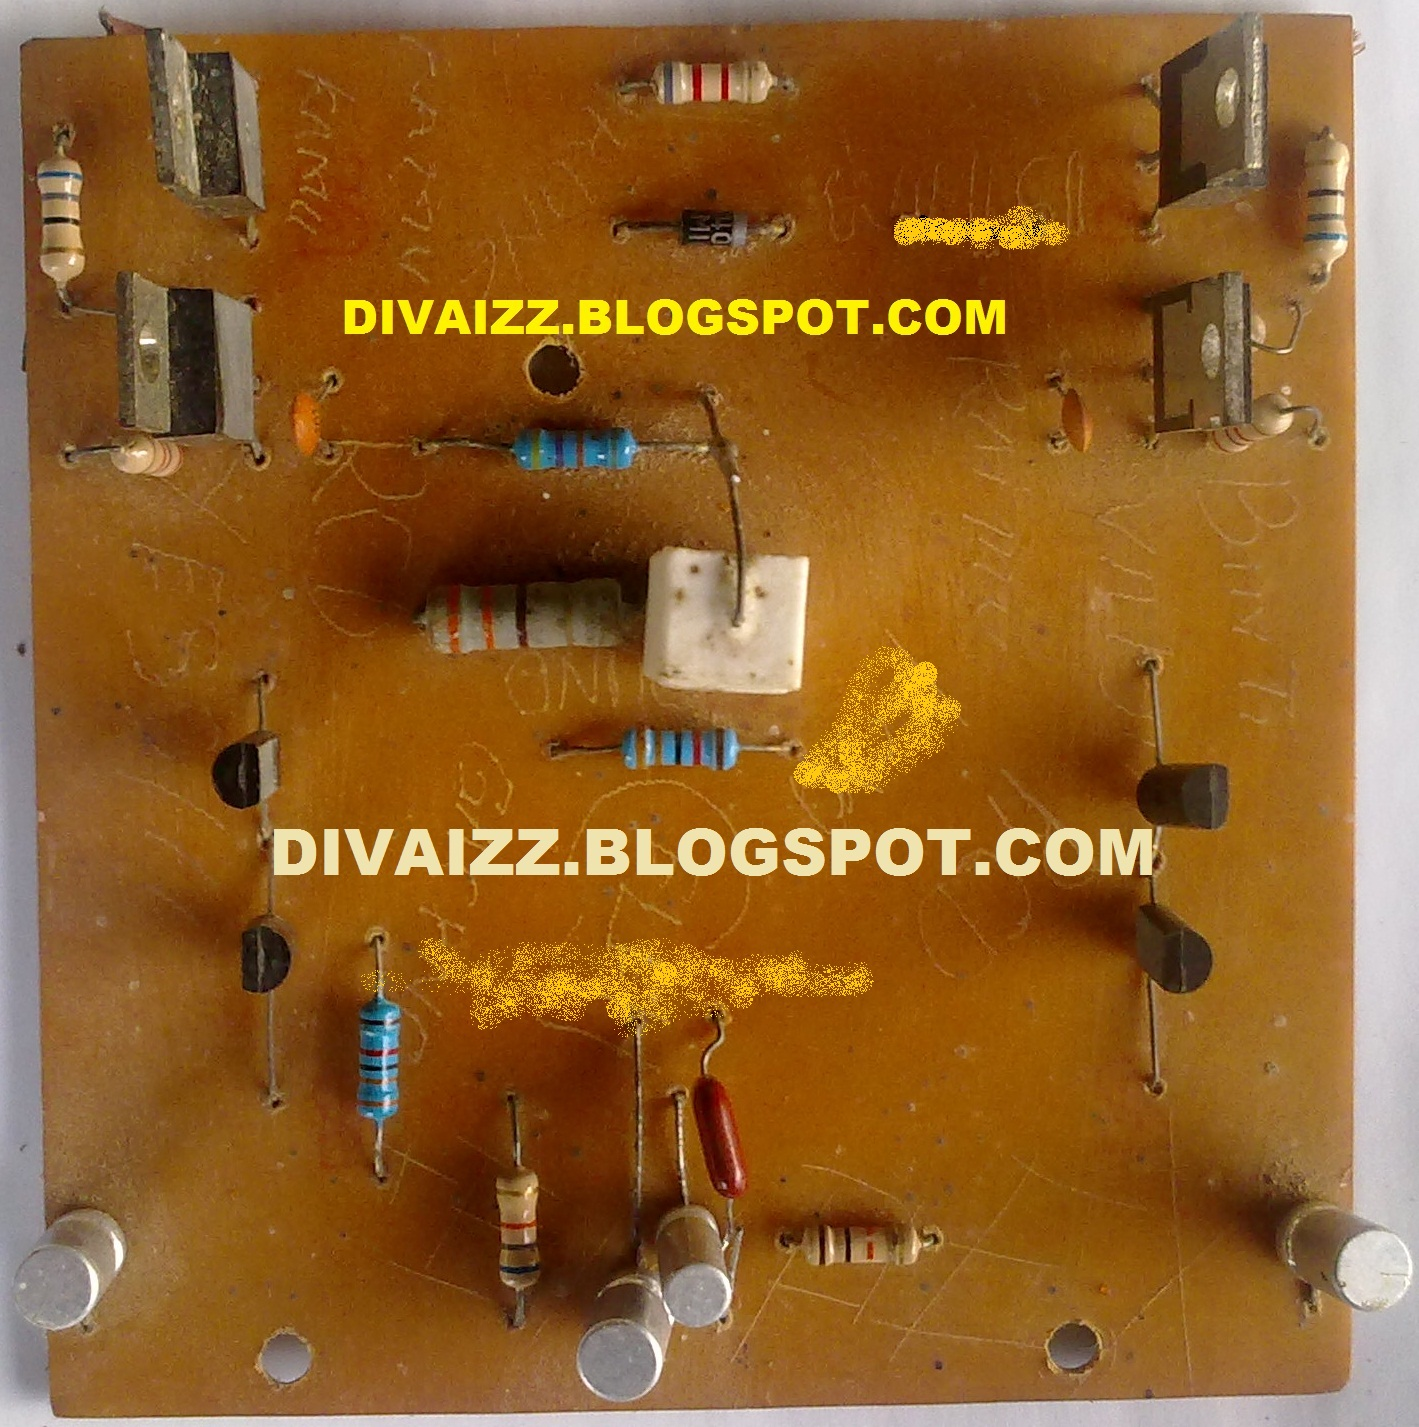 Cara Modifikasi Power Amplifier 600 Watt - www.divaizz.com